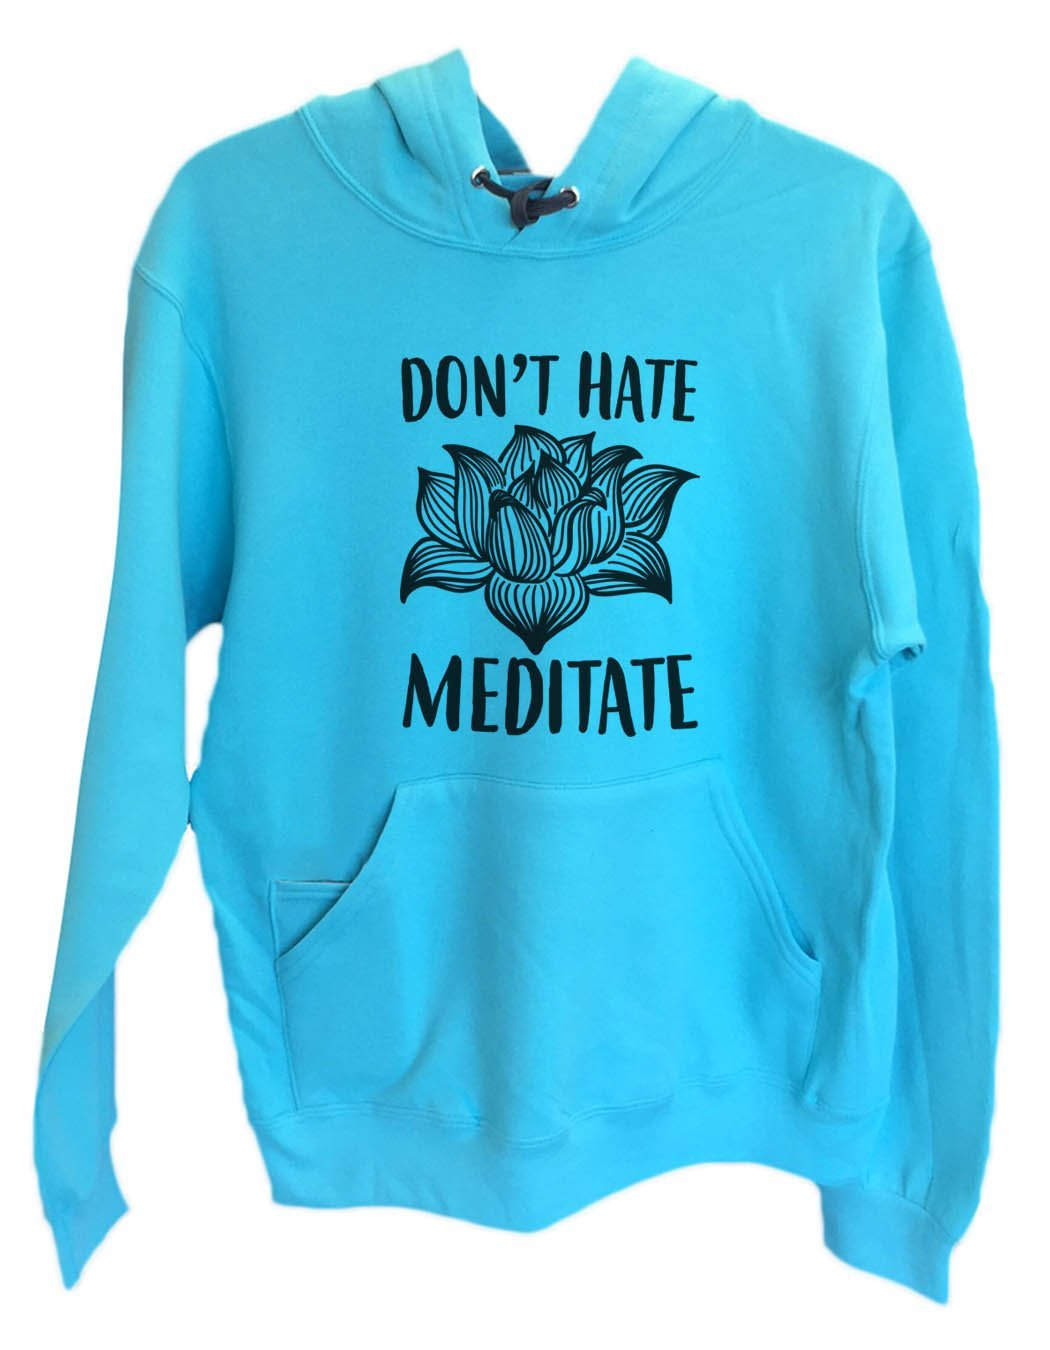 UNISEX HOODIE - Don't Hate Meditate - FUNNY MENS AND WOMENS HOODED SWEATSHIRTS - 2114 Funny Shirt Small / Turquoise